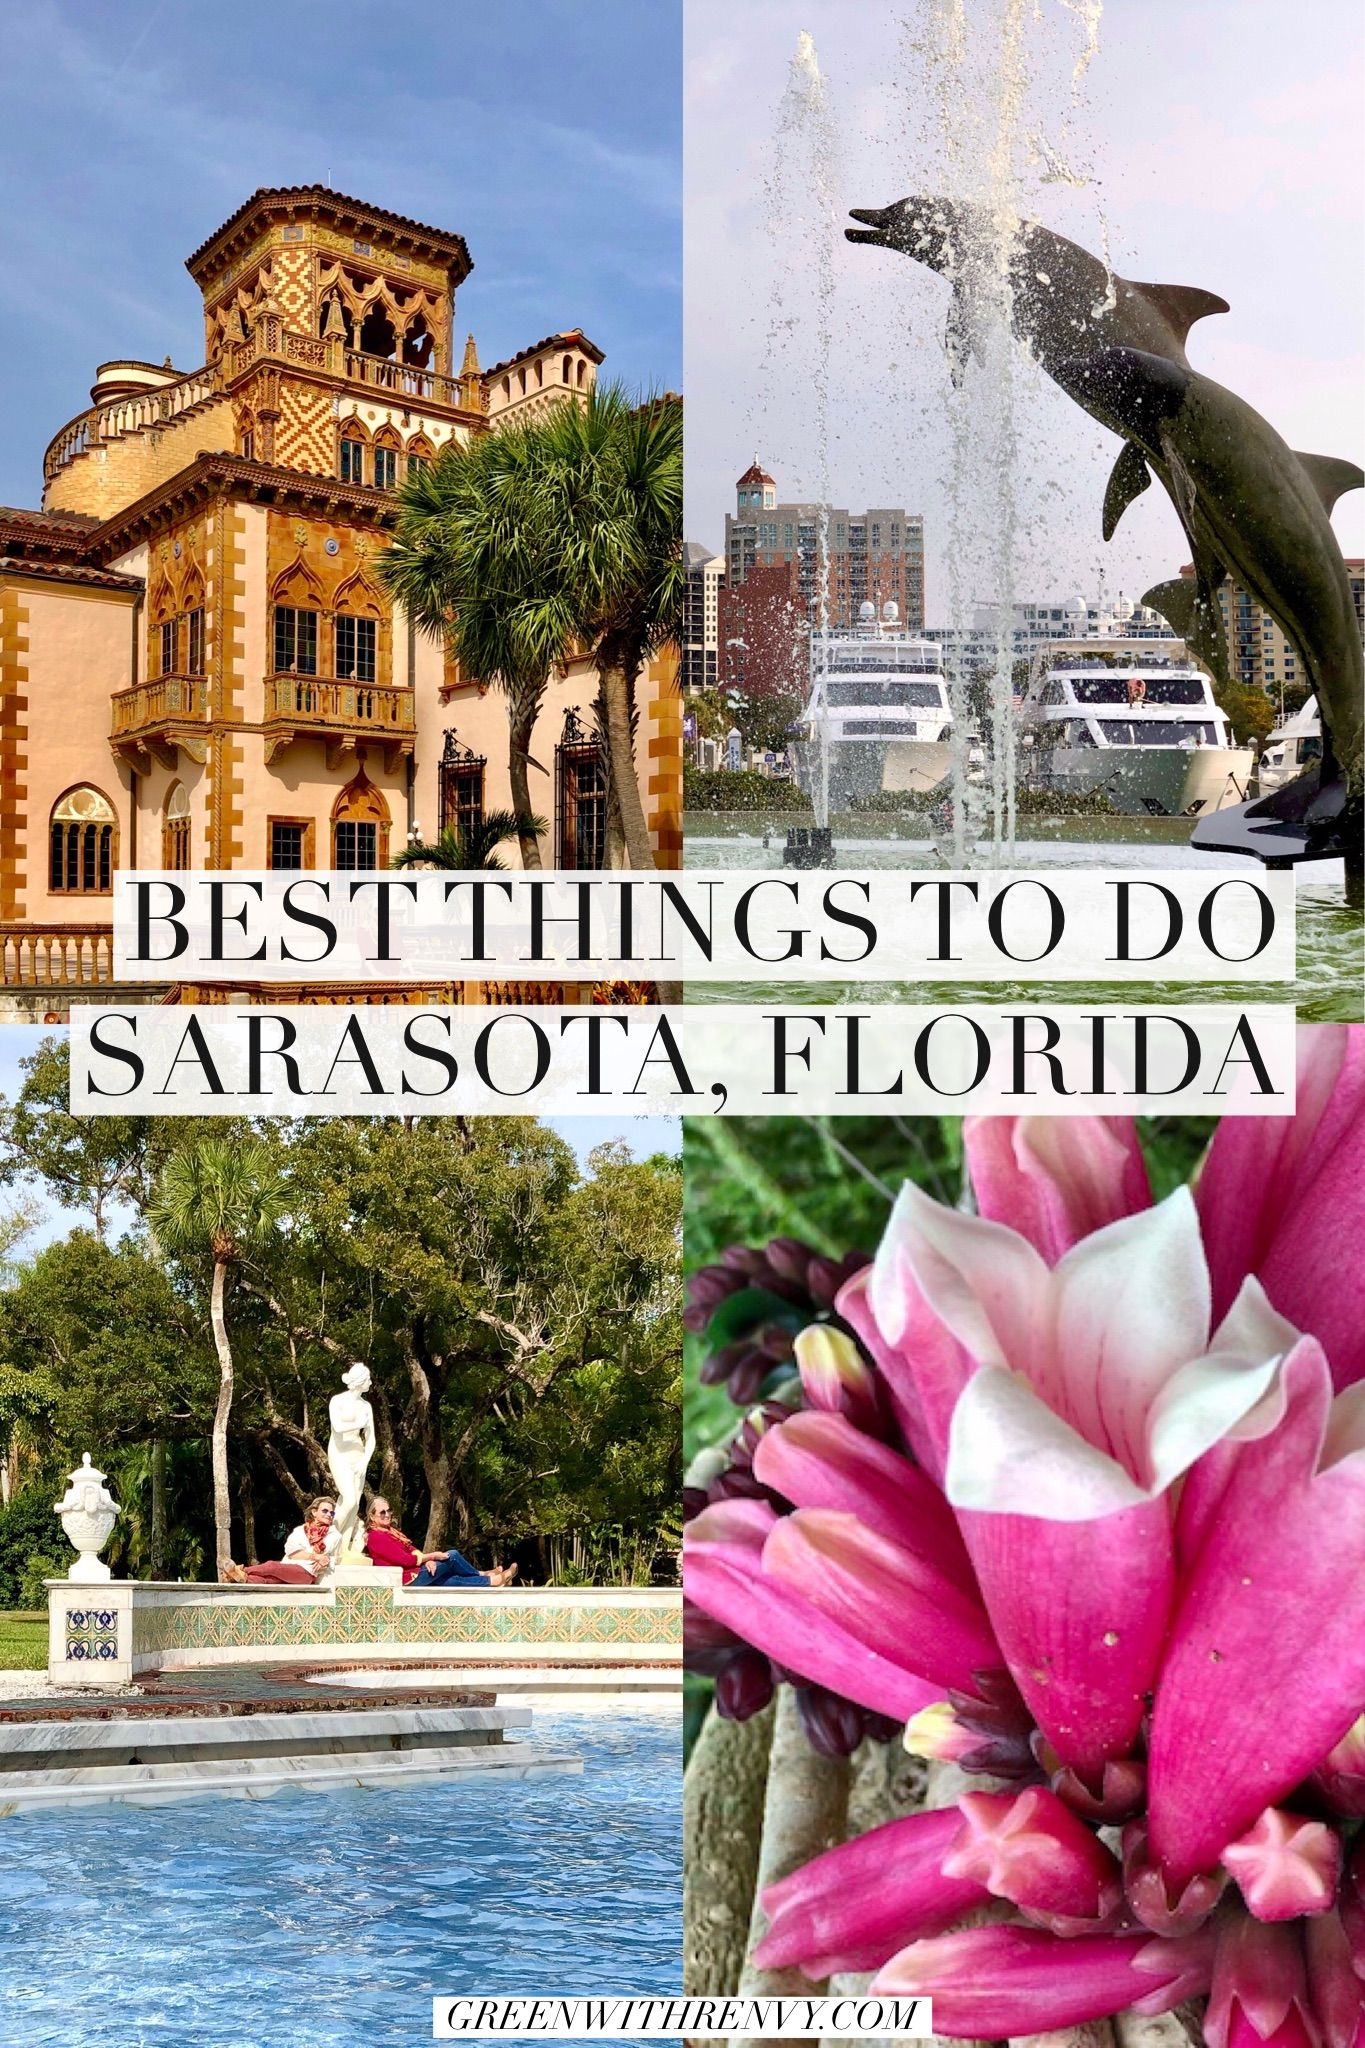 4 Of The Best Places To Visit On Florida S Gulf Coast Gulf Coast Florida Cool Places To Visit Visit Florida